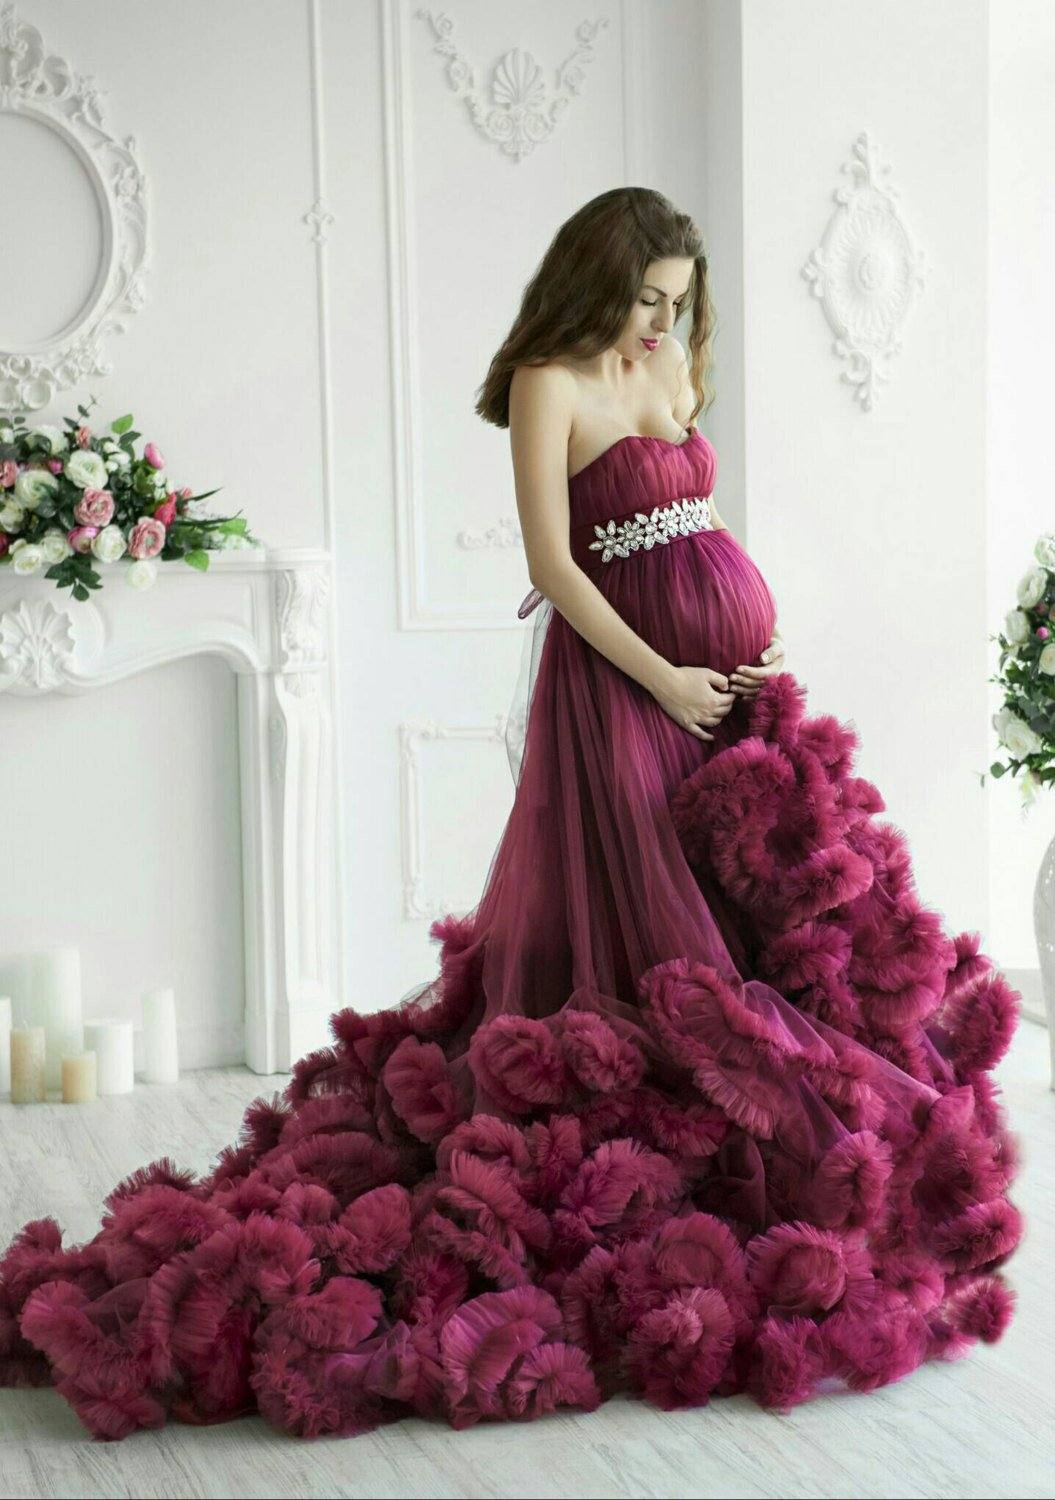 Maternity Ruffled Tulle Dress Photoshoot Pregnancy Purple Cloud Dress